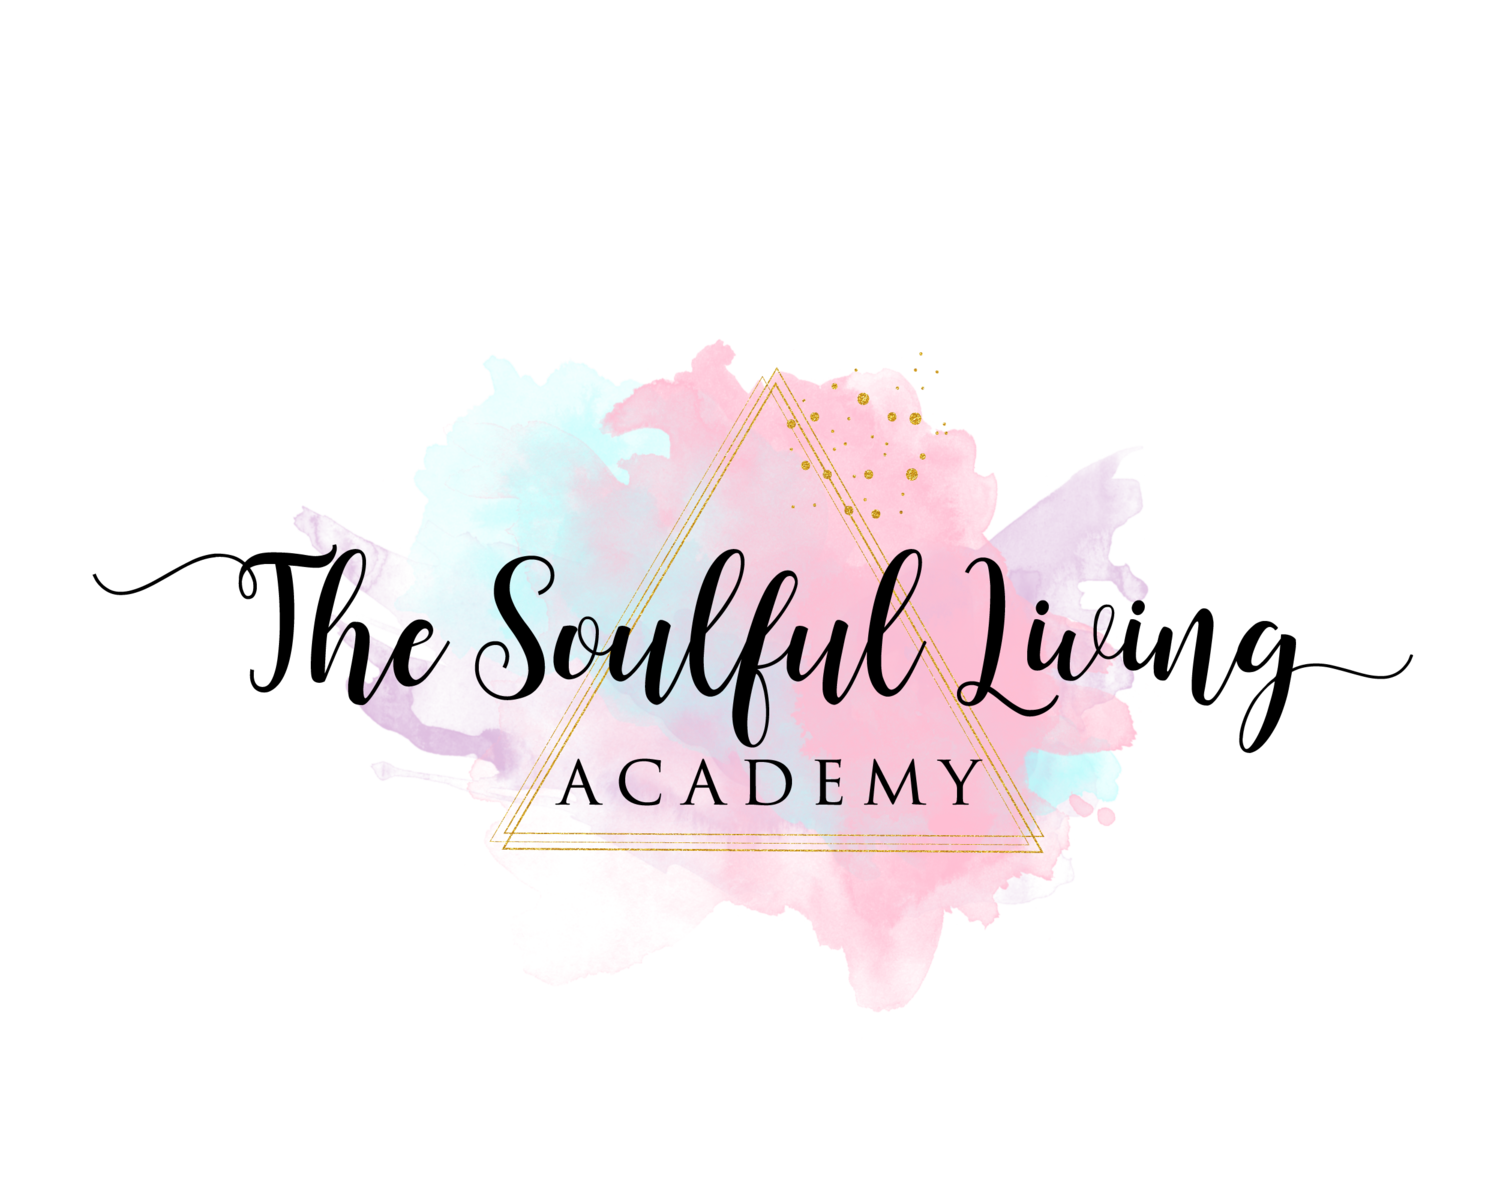 The Soulful Retreat — The Soulful Living Academy